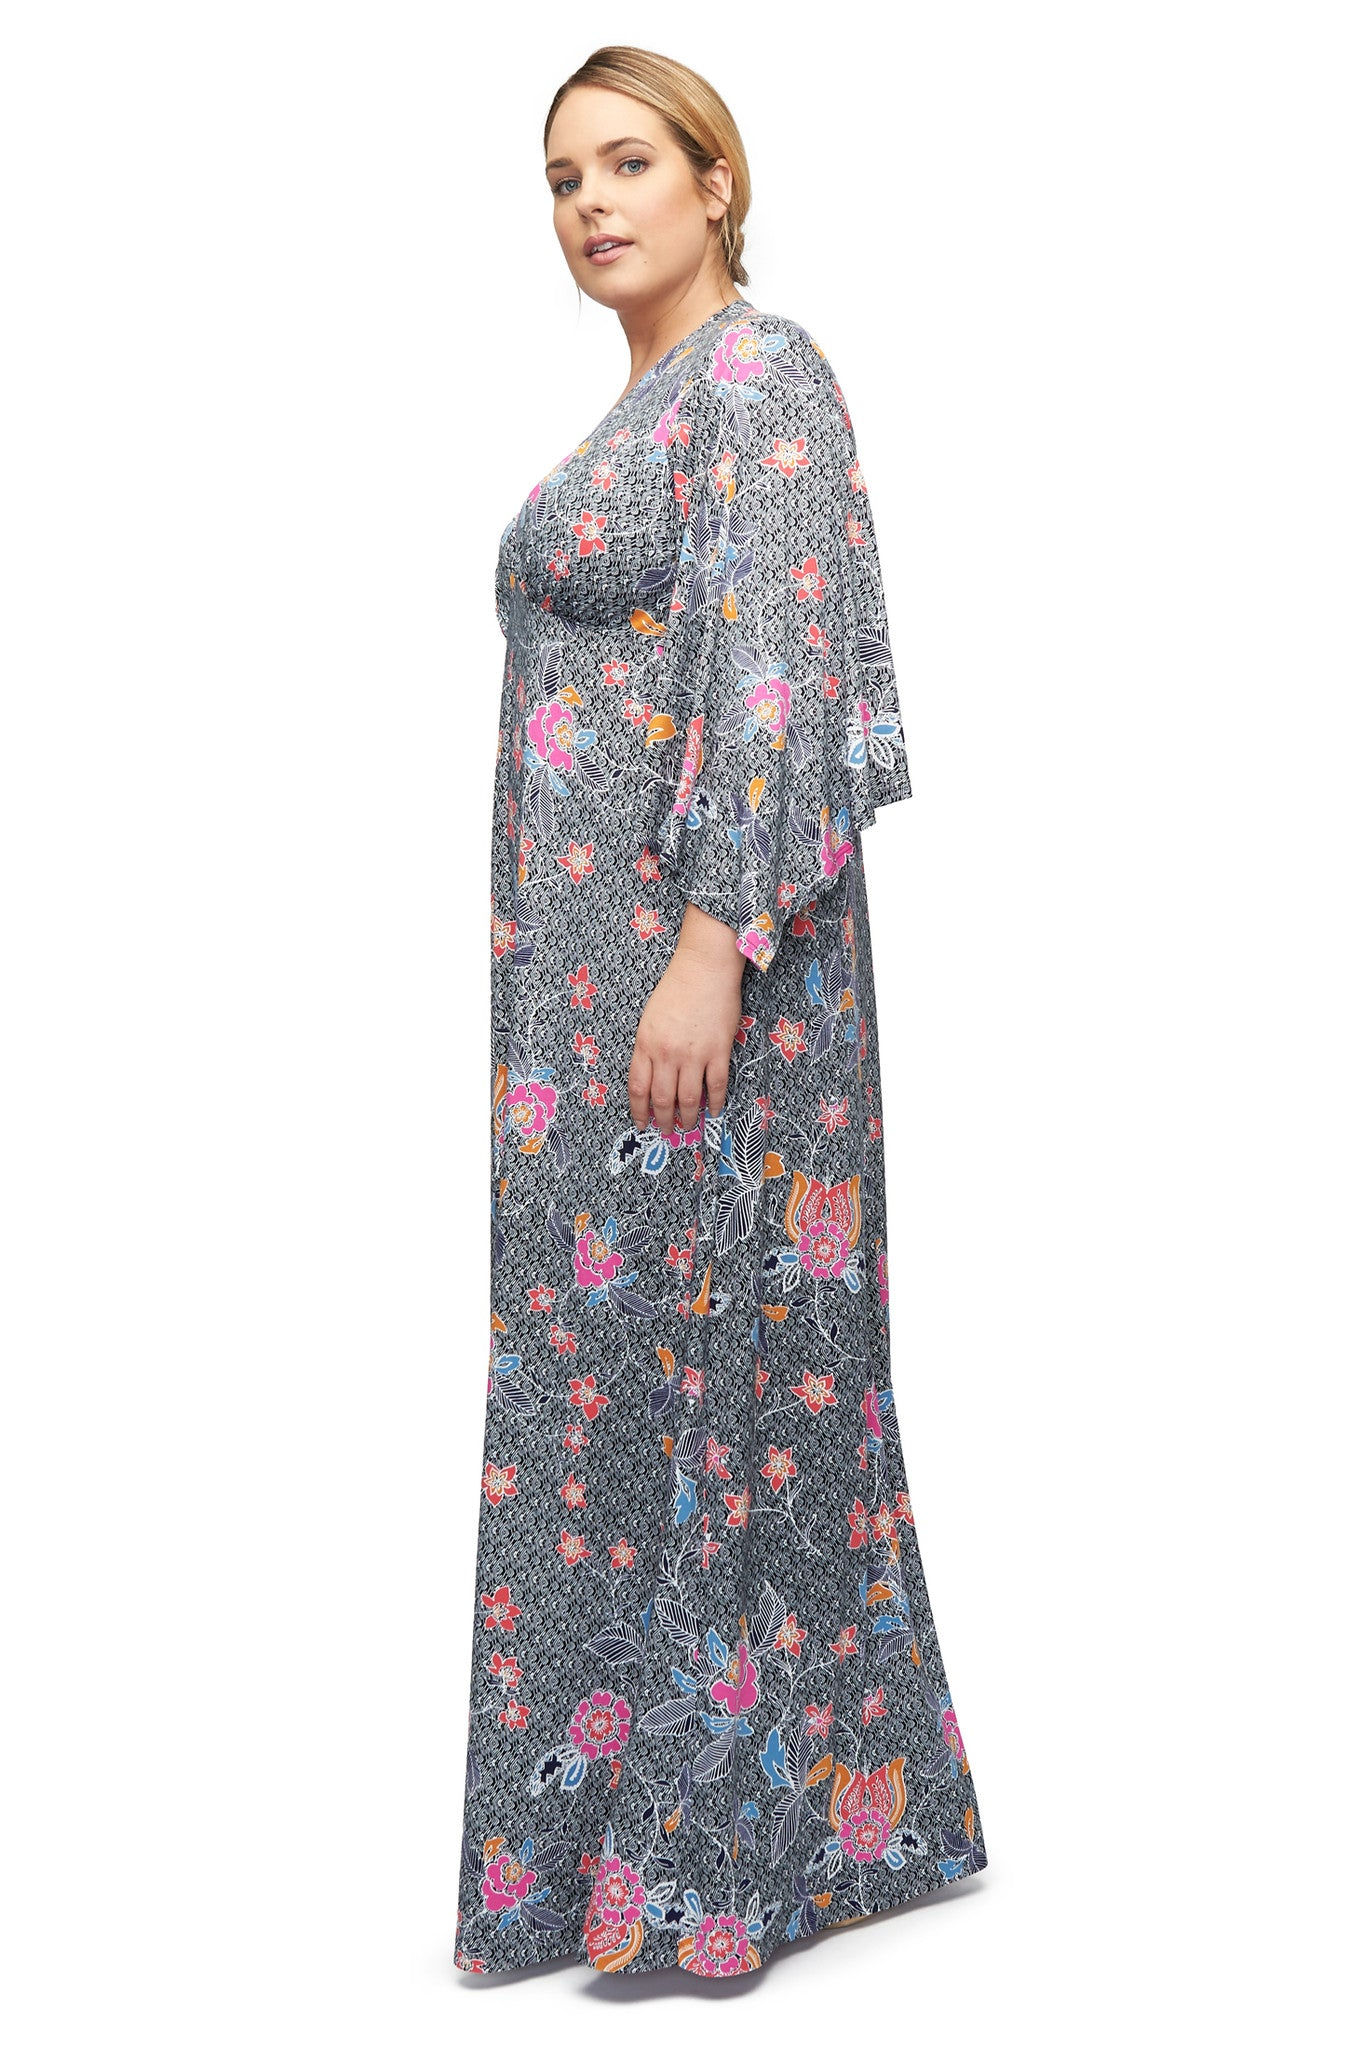 Brayan Dress WL Print - Island Flower